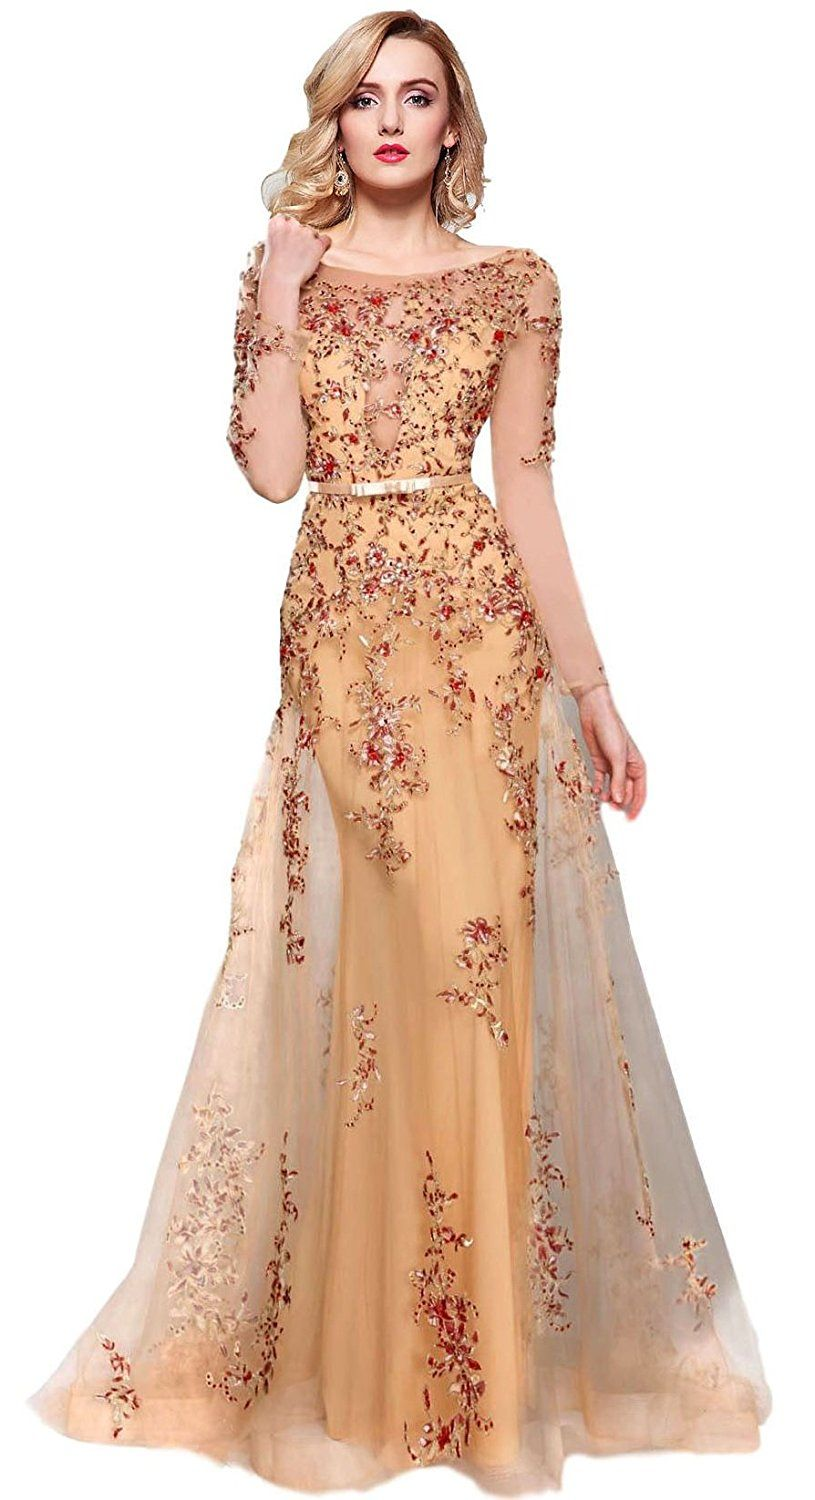 299e23ce5f8 Meier Women s Illusion Long Sleeve Embroidery Prom Formal Dress at Amazon  Women s Clothing store